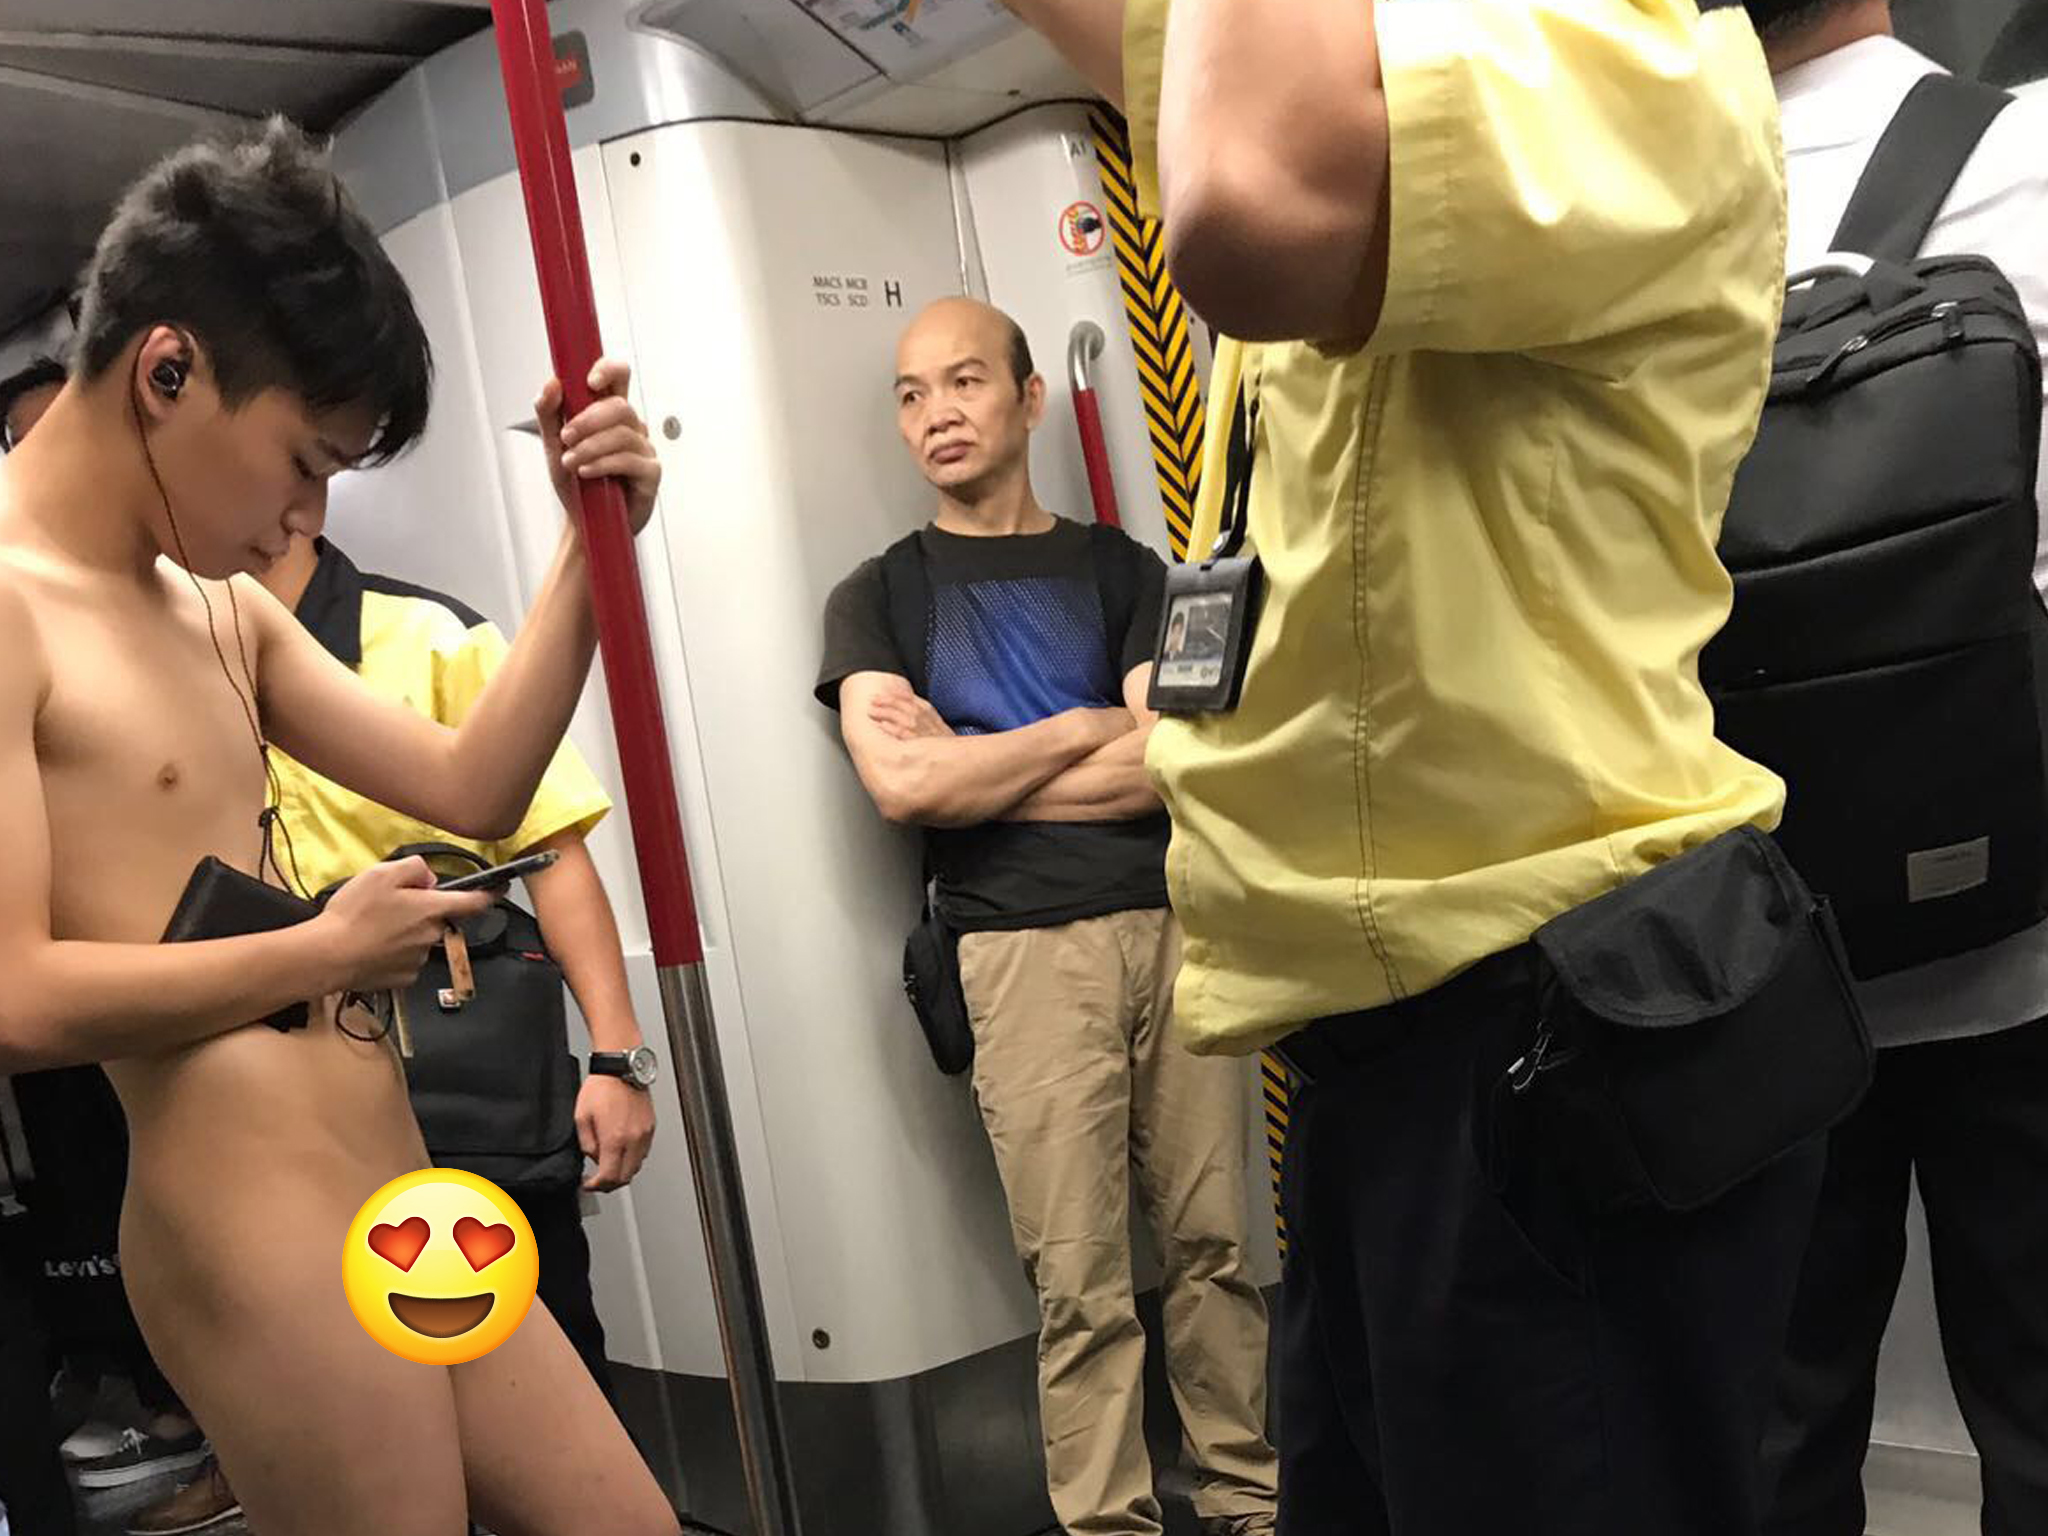 Hong Kong MTR naked man